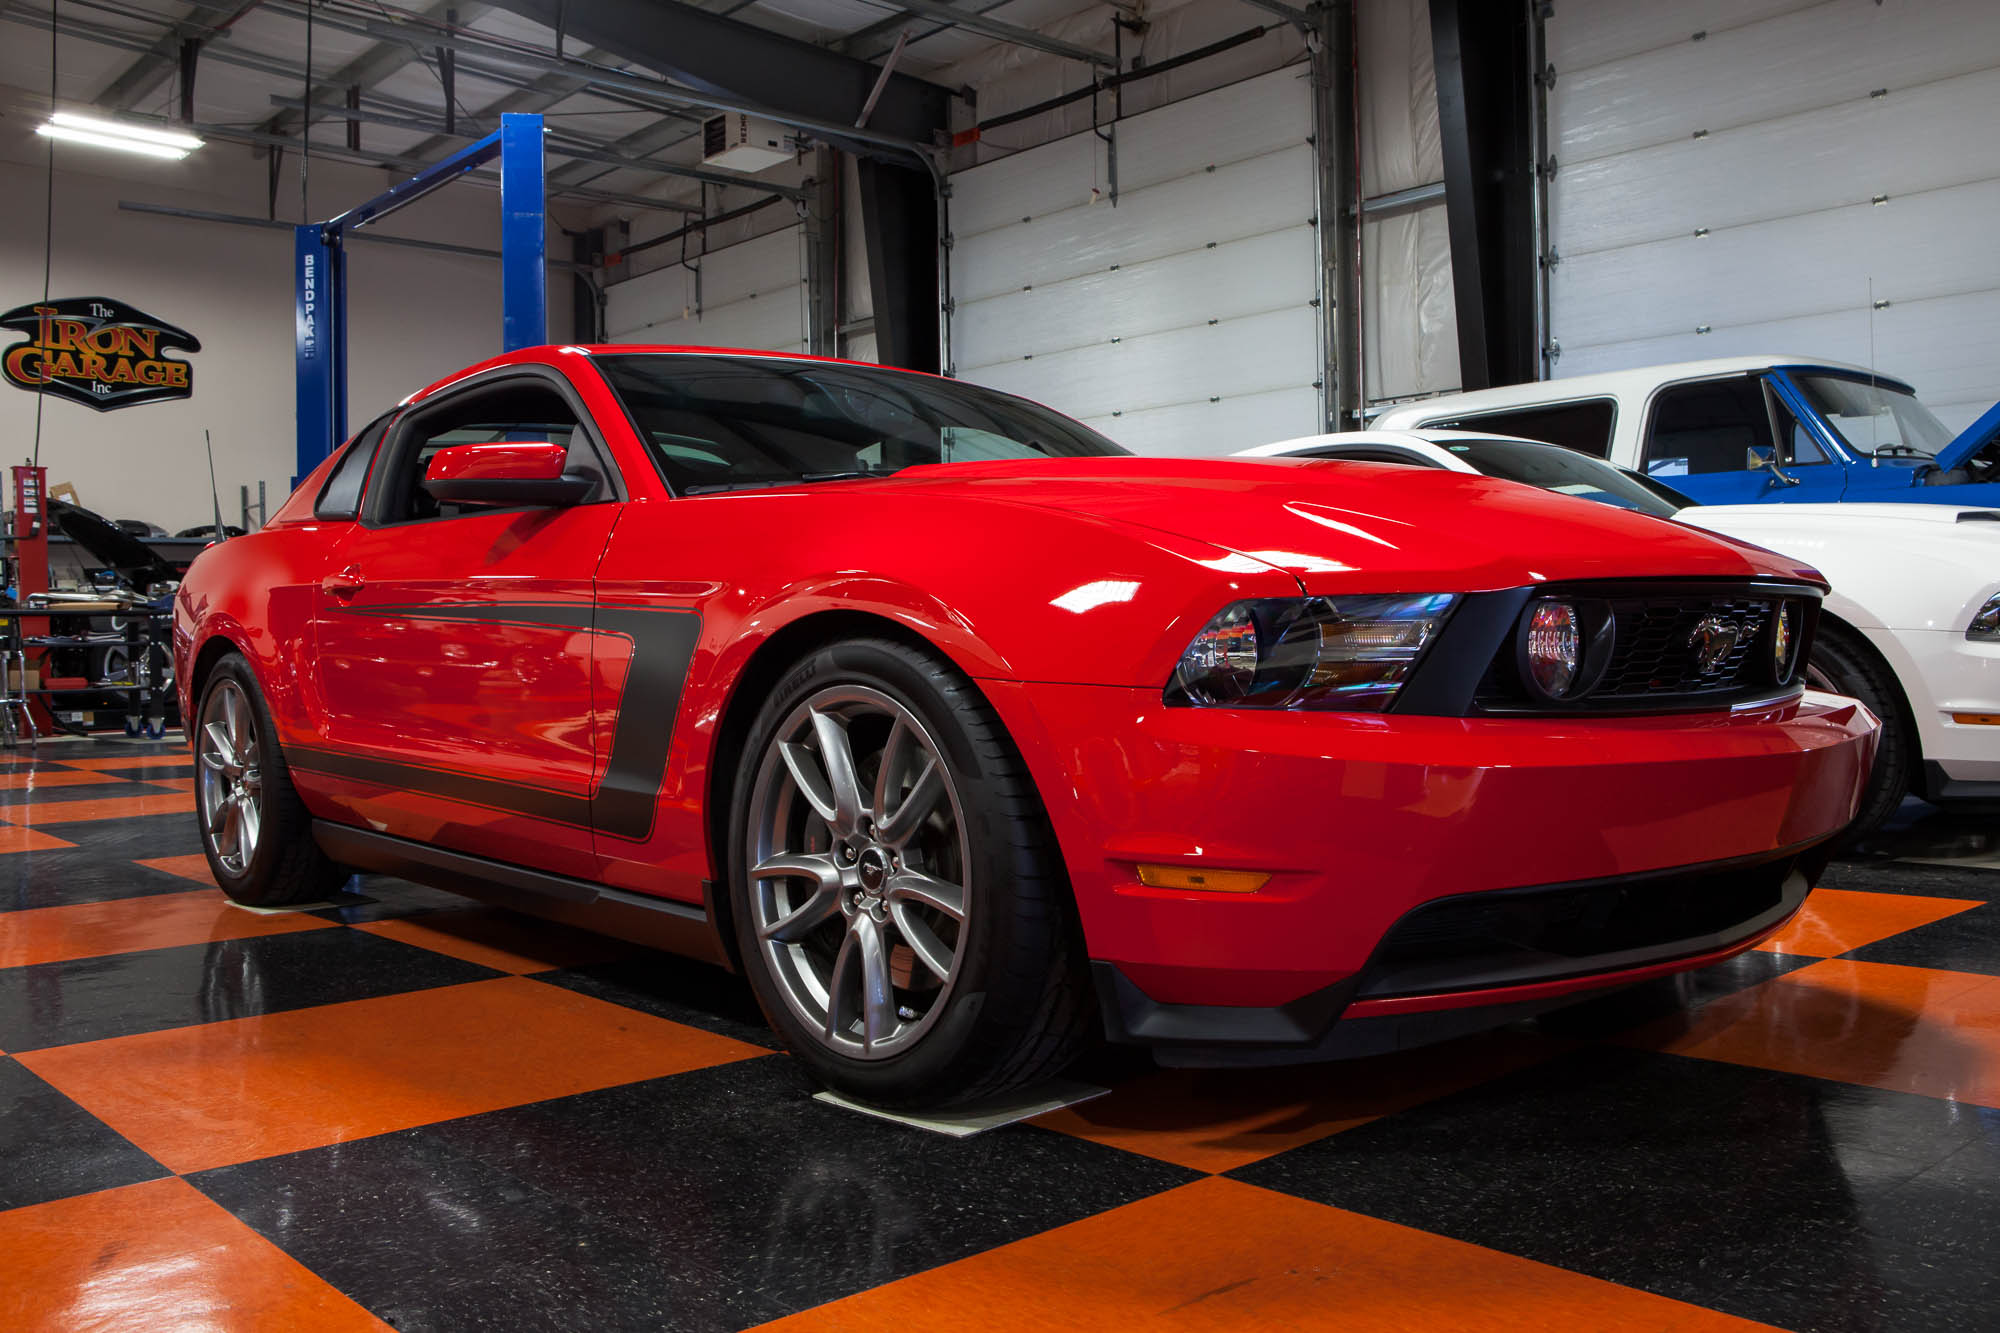 2012 Mustang Gt Sold The Iron Garage